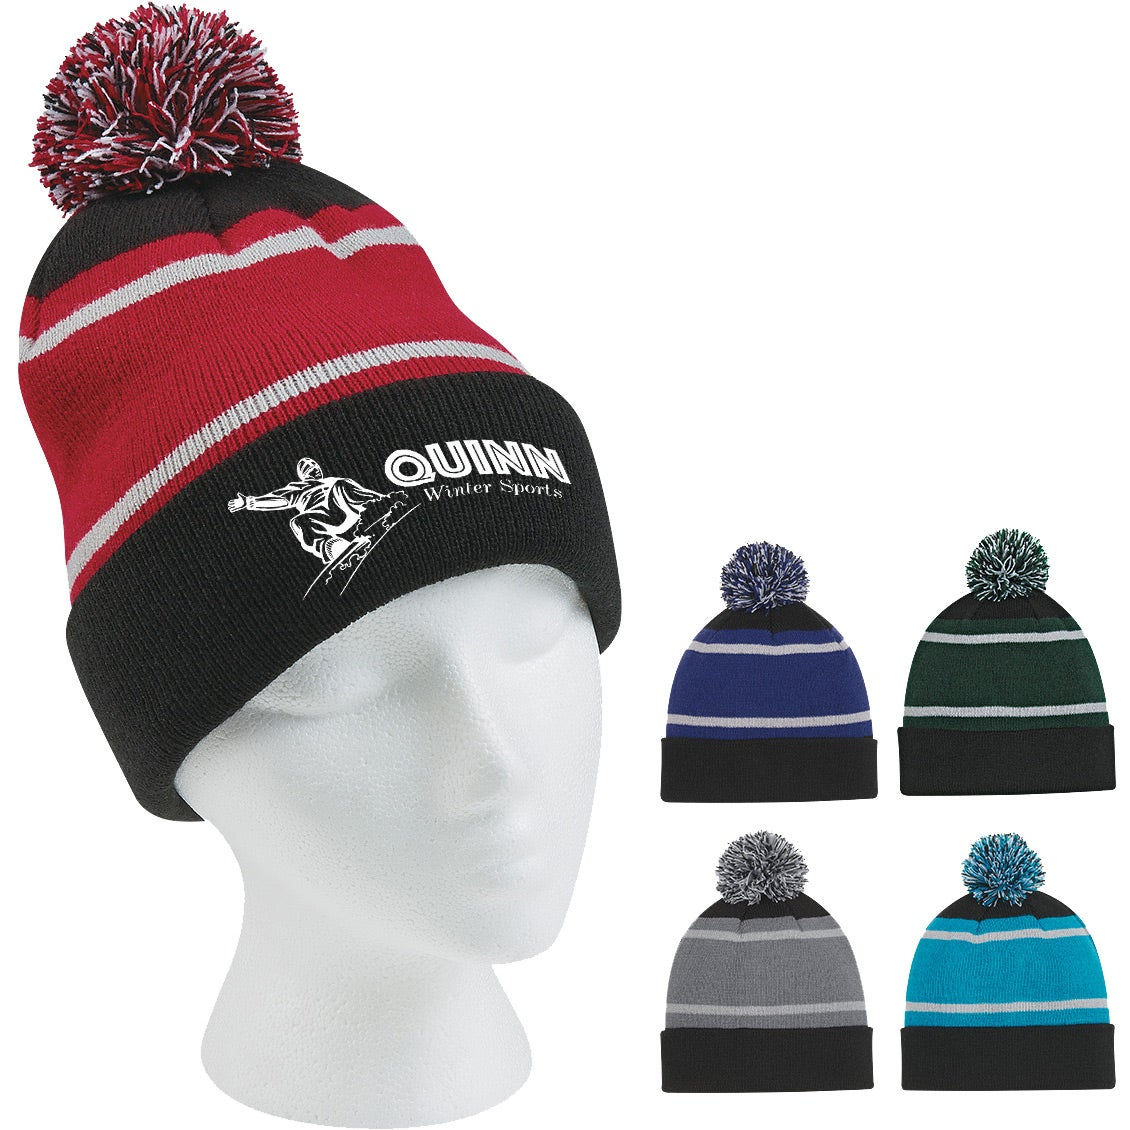 58b8c57c591 Tri-Tone Striped Pom Beanie With Cuff